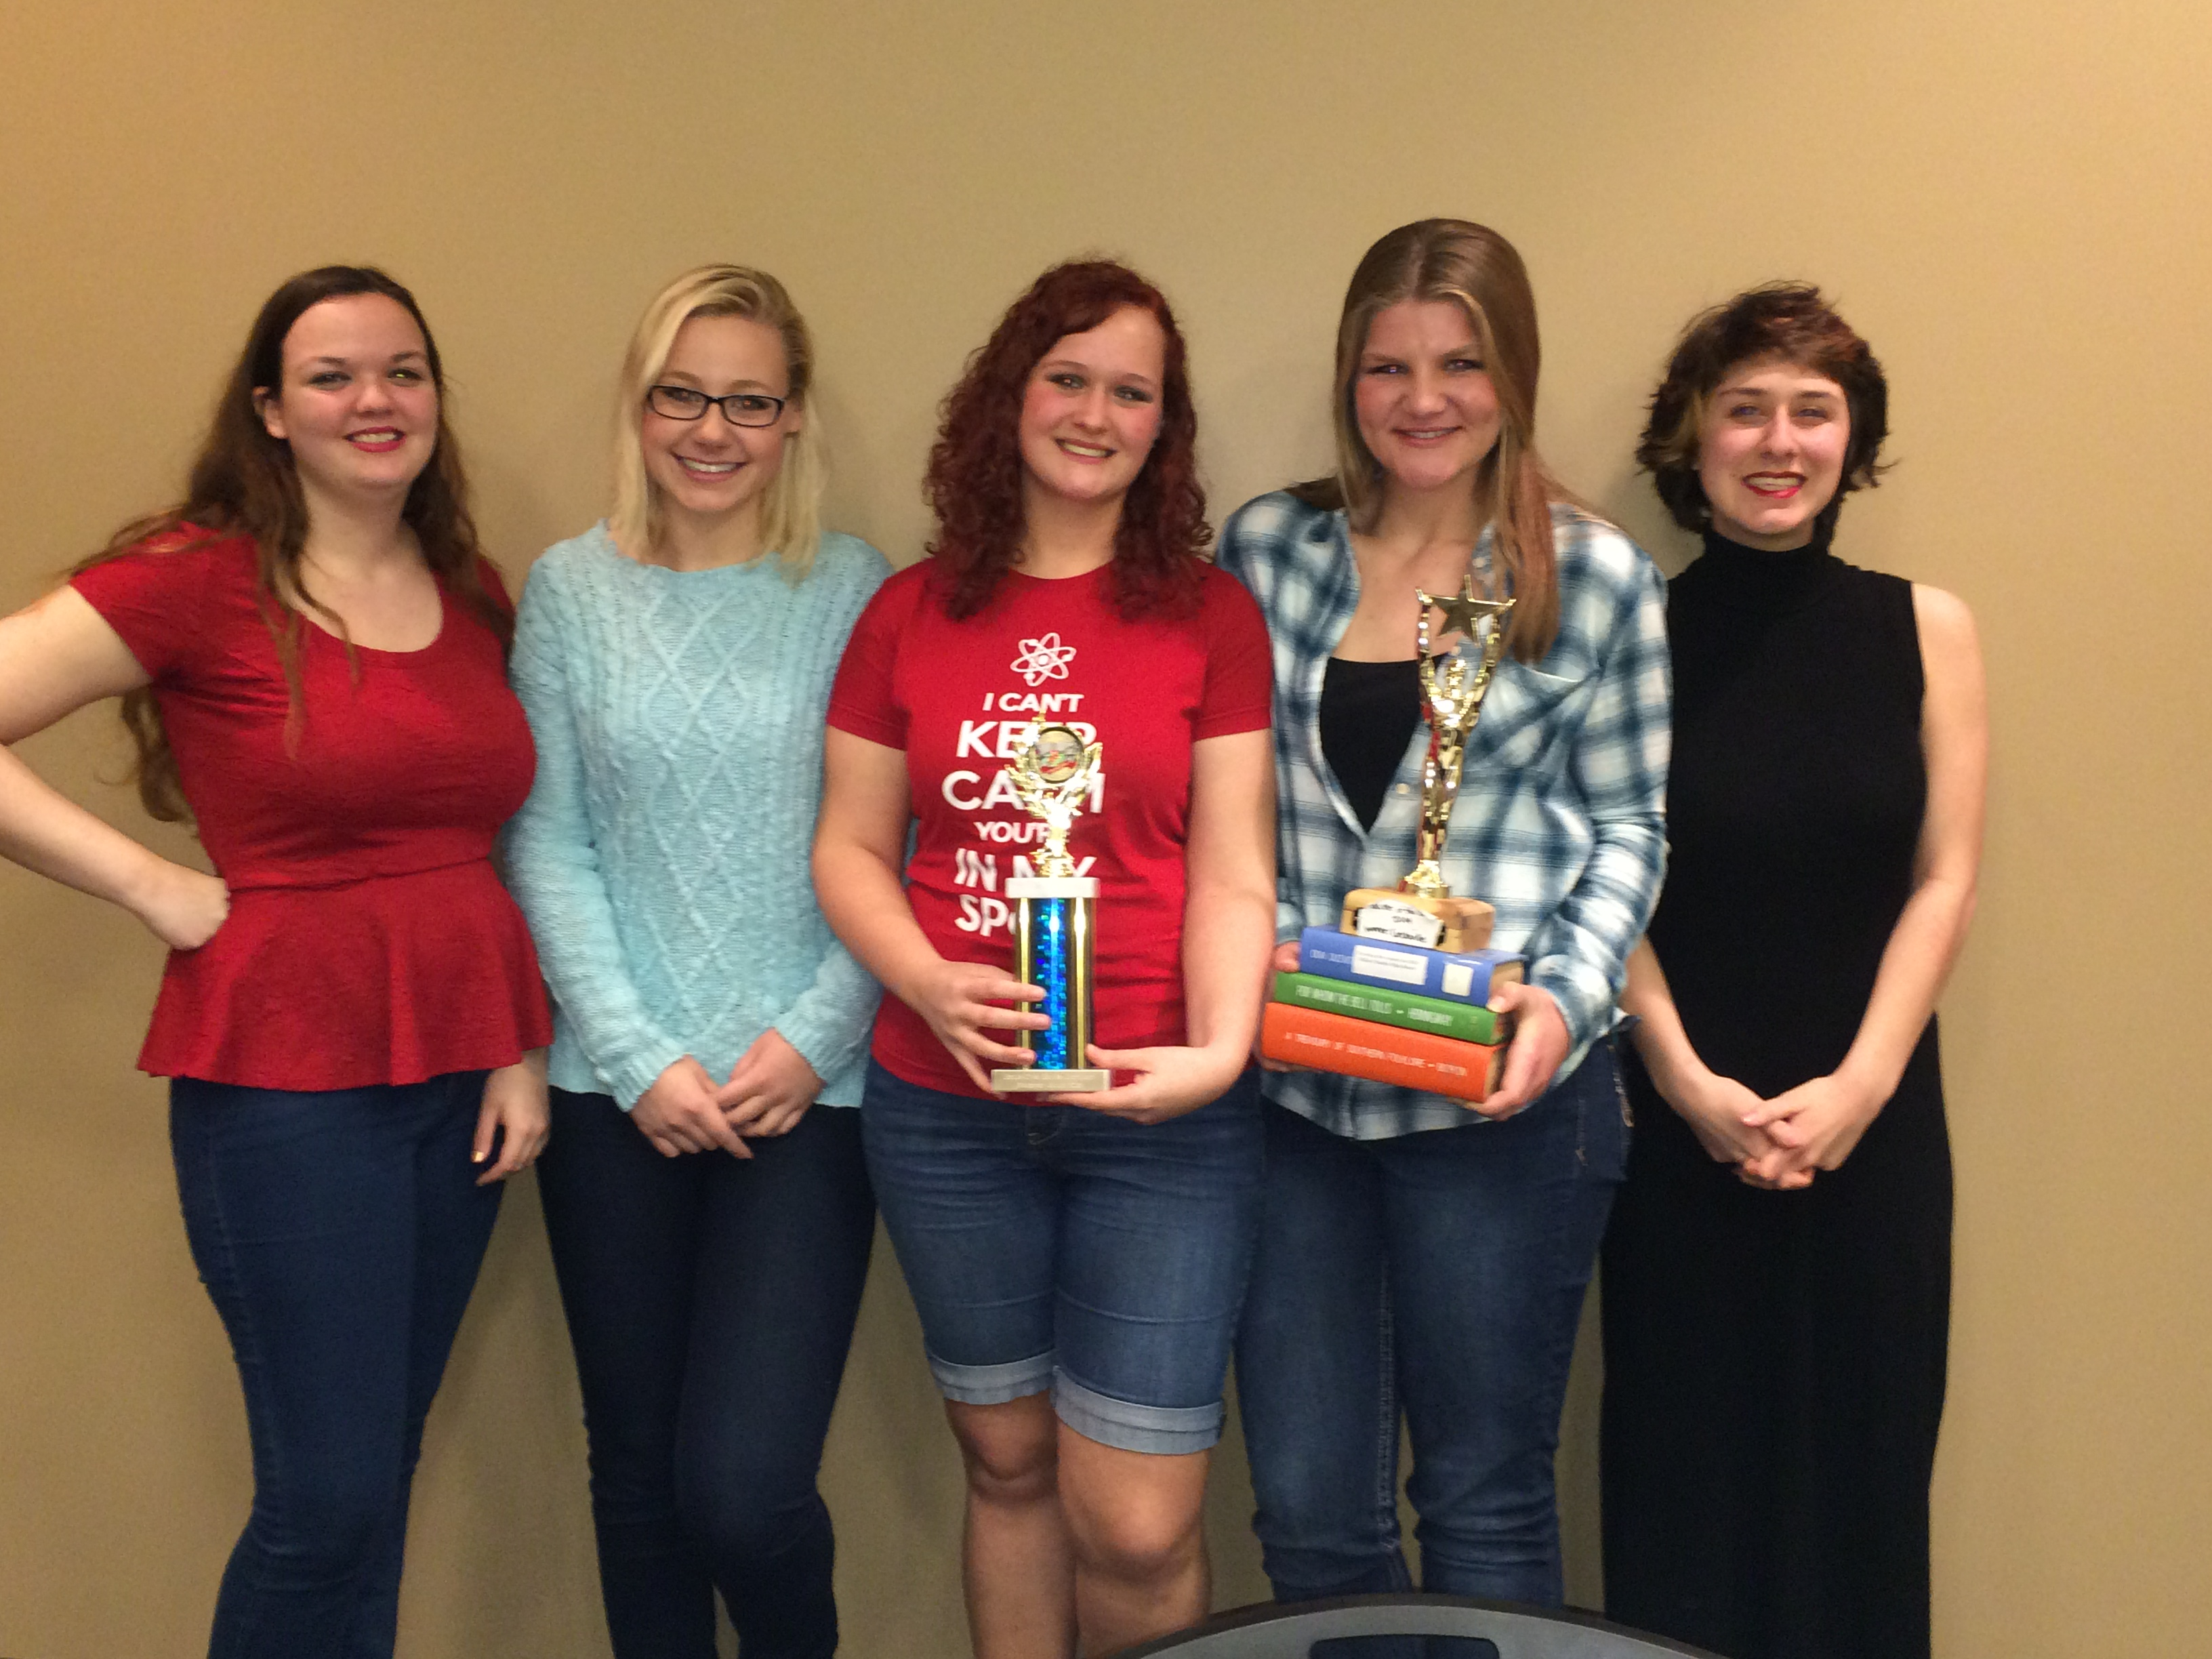 Pictured is winning team from Logan Elm H.S.: (left to right) Kaitlynn Esquibel, Emma Baldinger, Tiffany Smolinski, Elizabeth Paul and Brittany Irwin.